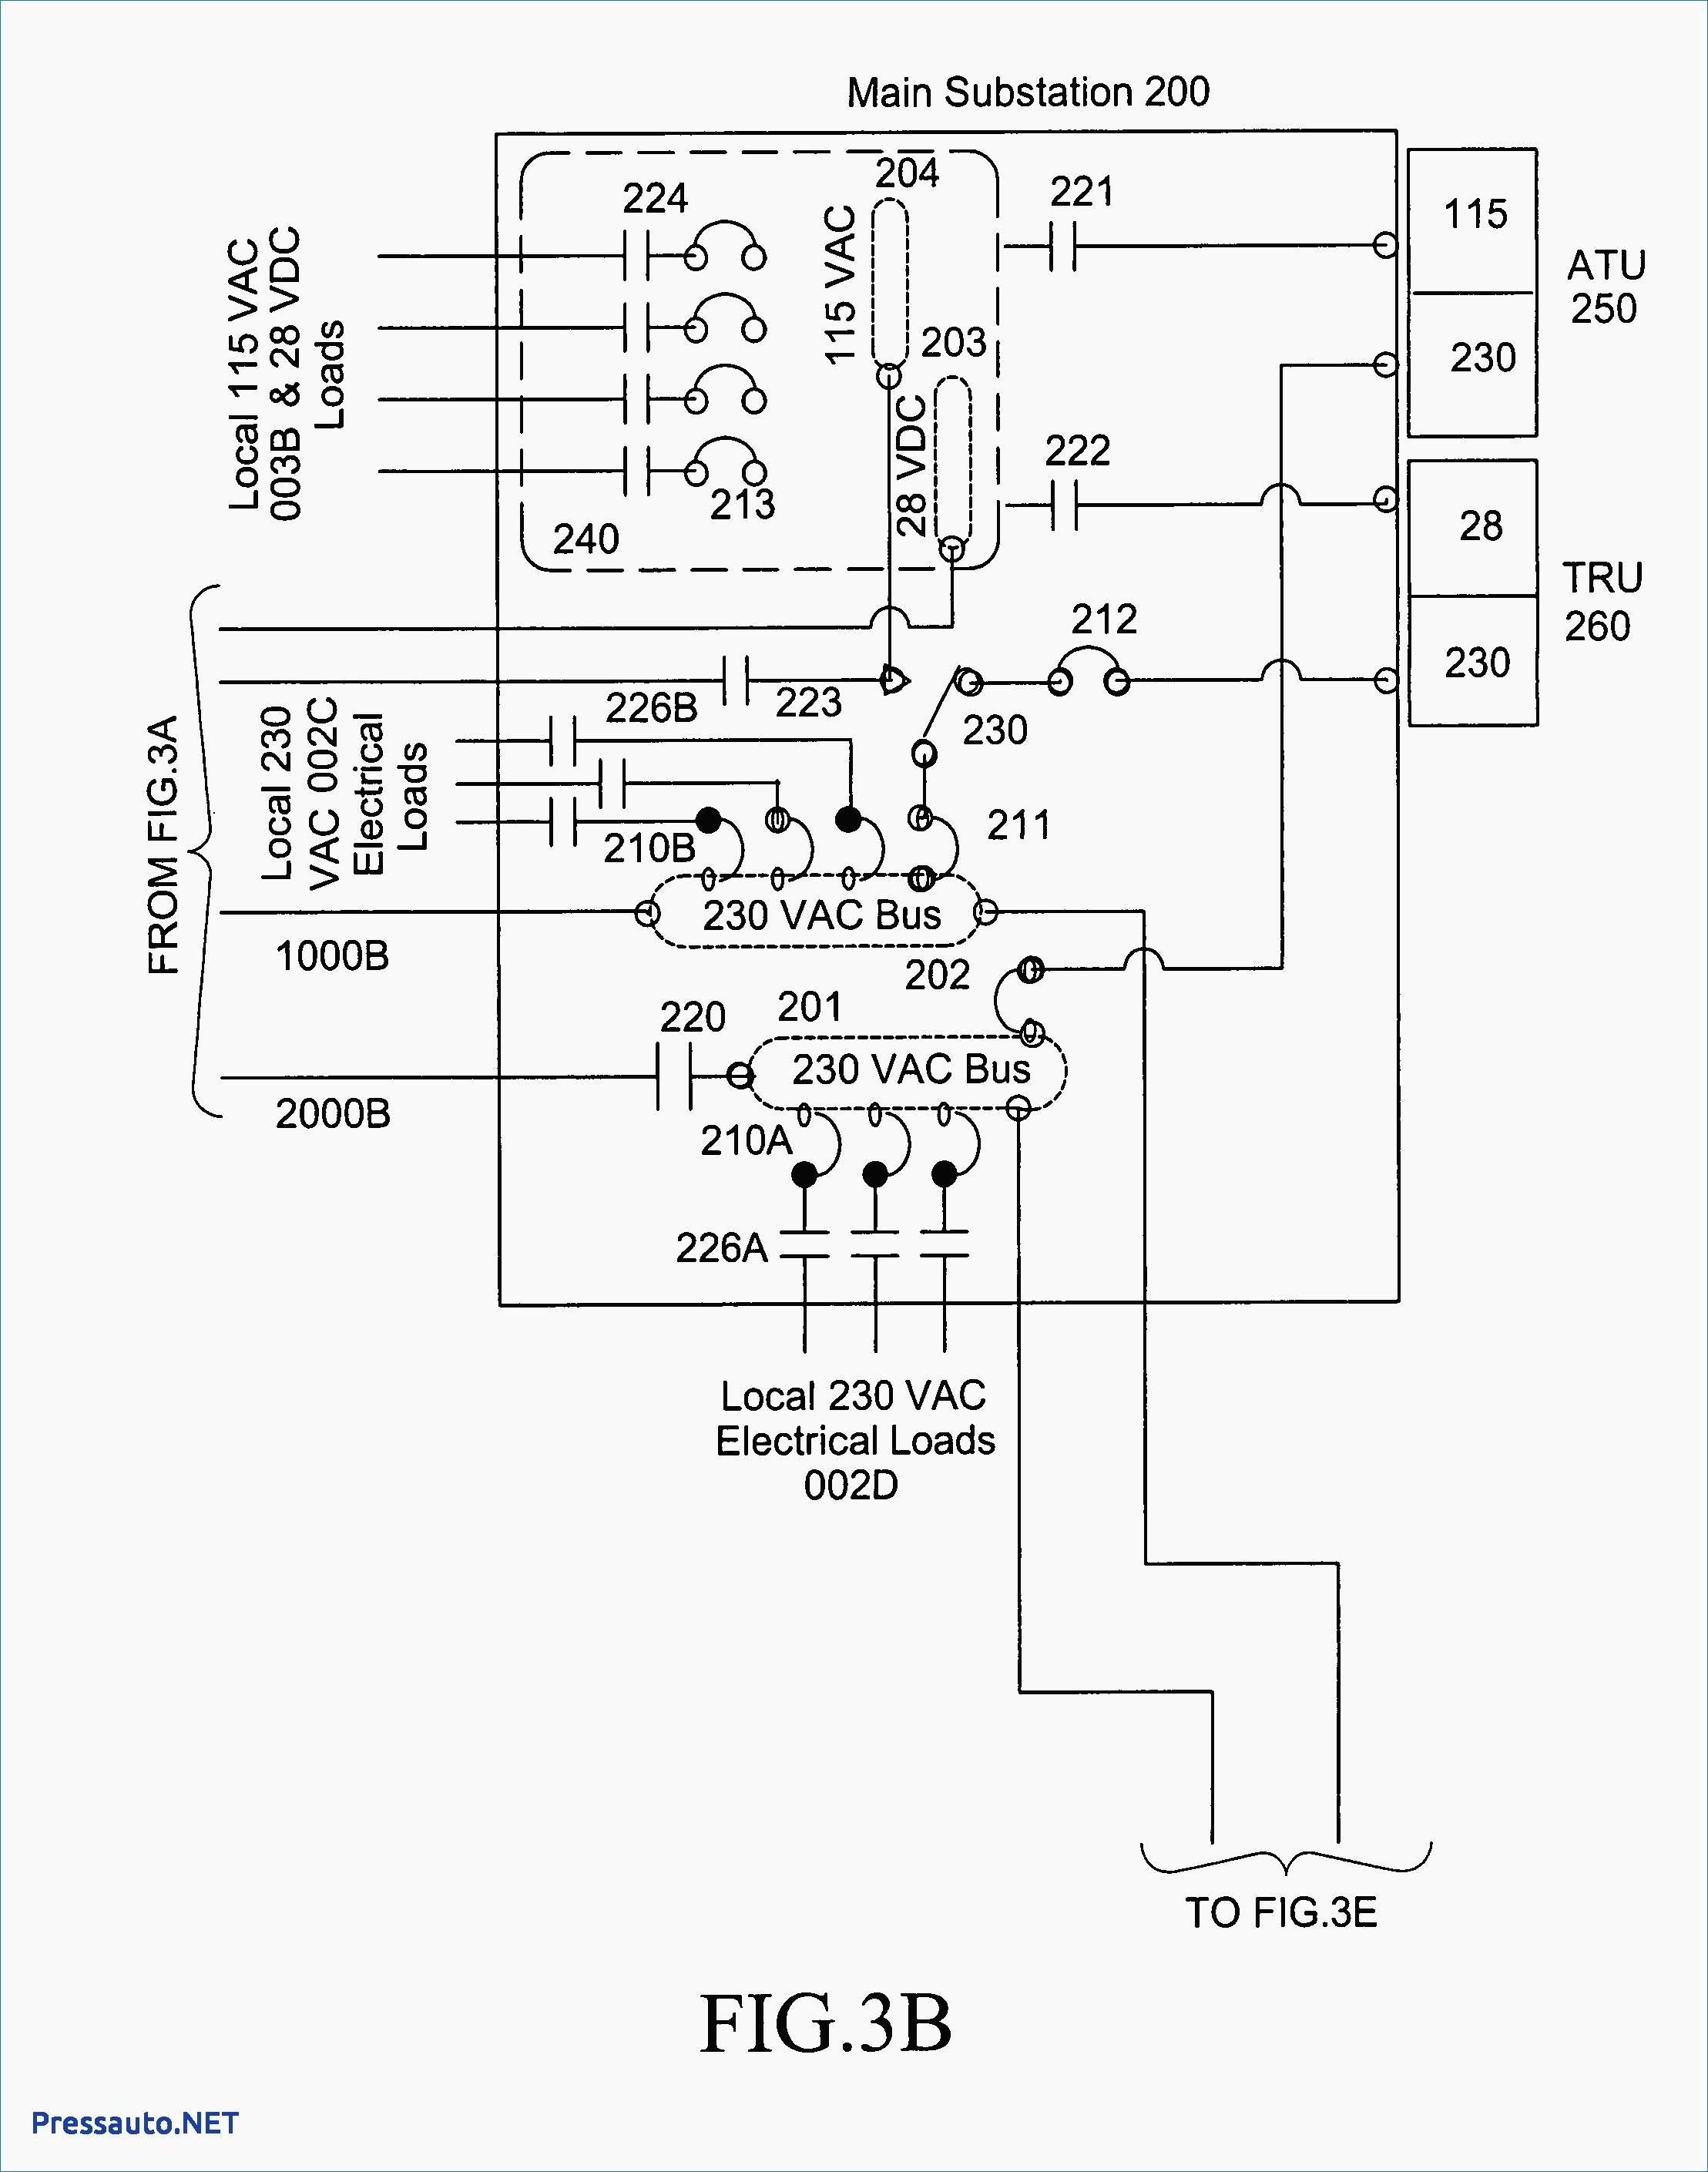 W7459a1001 Wiring Diagram. Honeywell Ml4302f1008 Actuator Wiring Diagram Trusted Rh Dafpods Co Basic Electrical Schematic Diagrams Simple. Wiring. W7459a1001 Wiring Diagram At Scoala.co